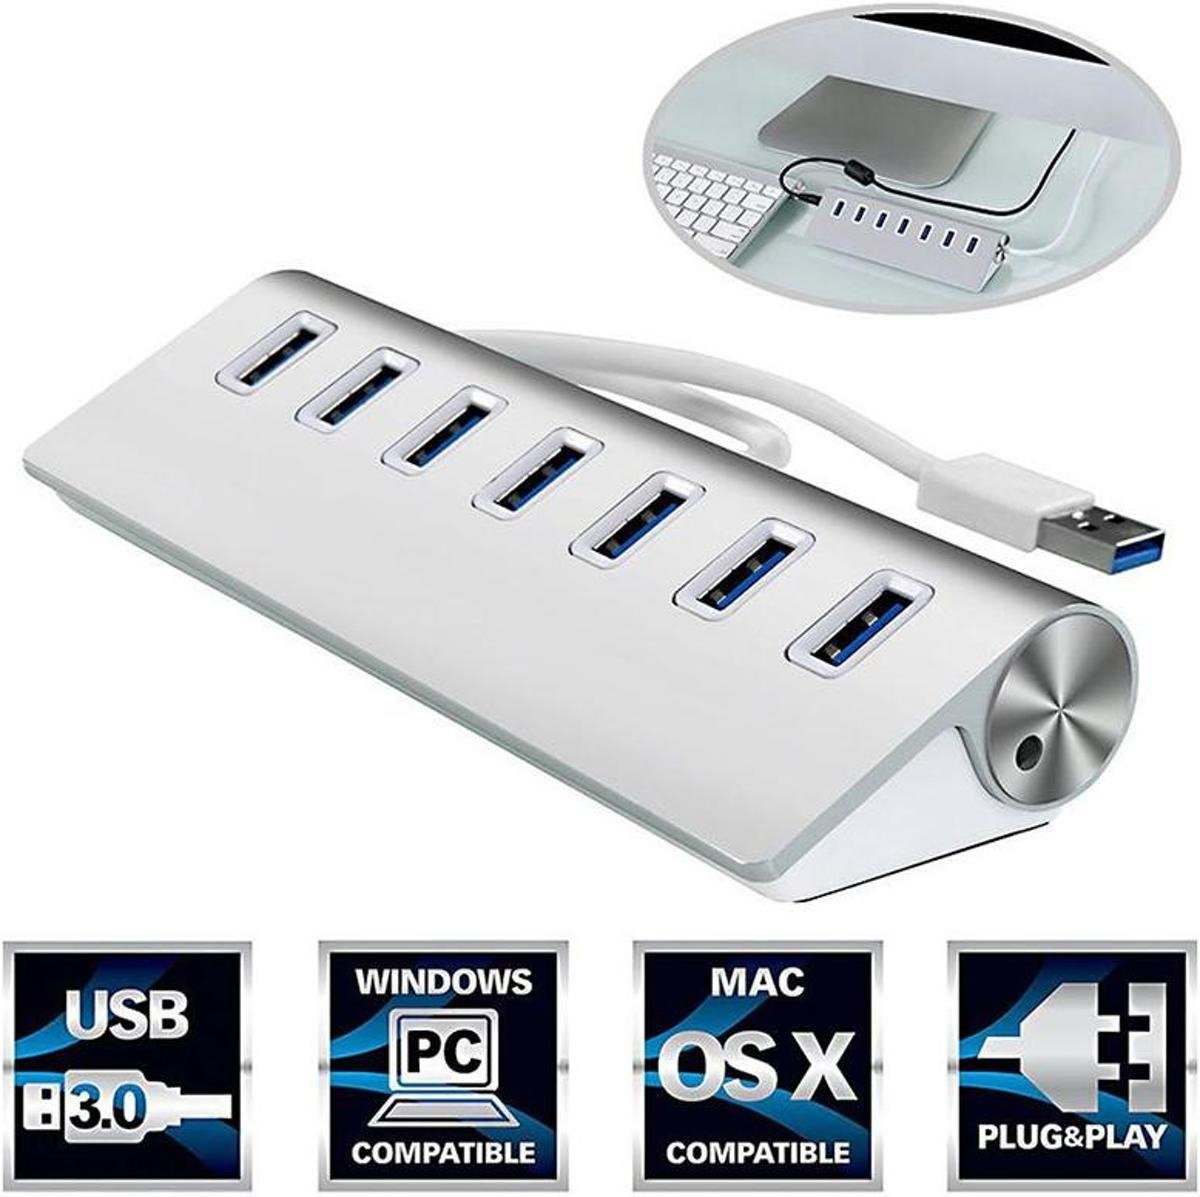 7 Poorts USB 3.0 Hub / Switch / Splitter / Verdeler - Compatibel Met Windows PC Laptop & Apple Mac - Plug&Play - Aluminium Look